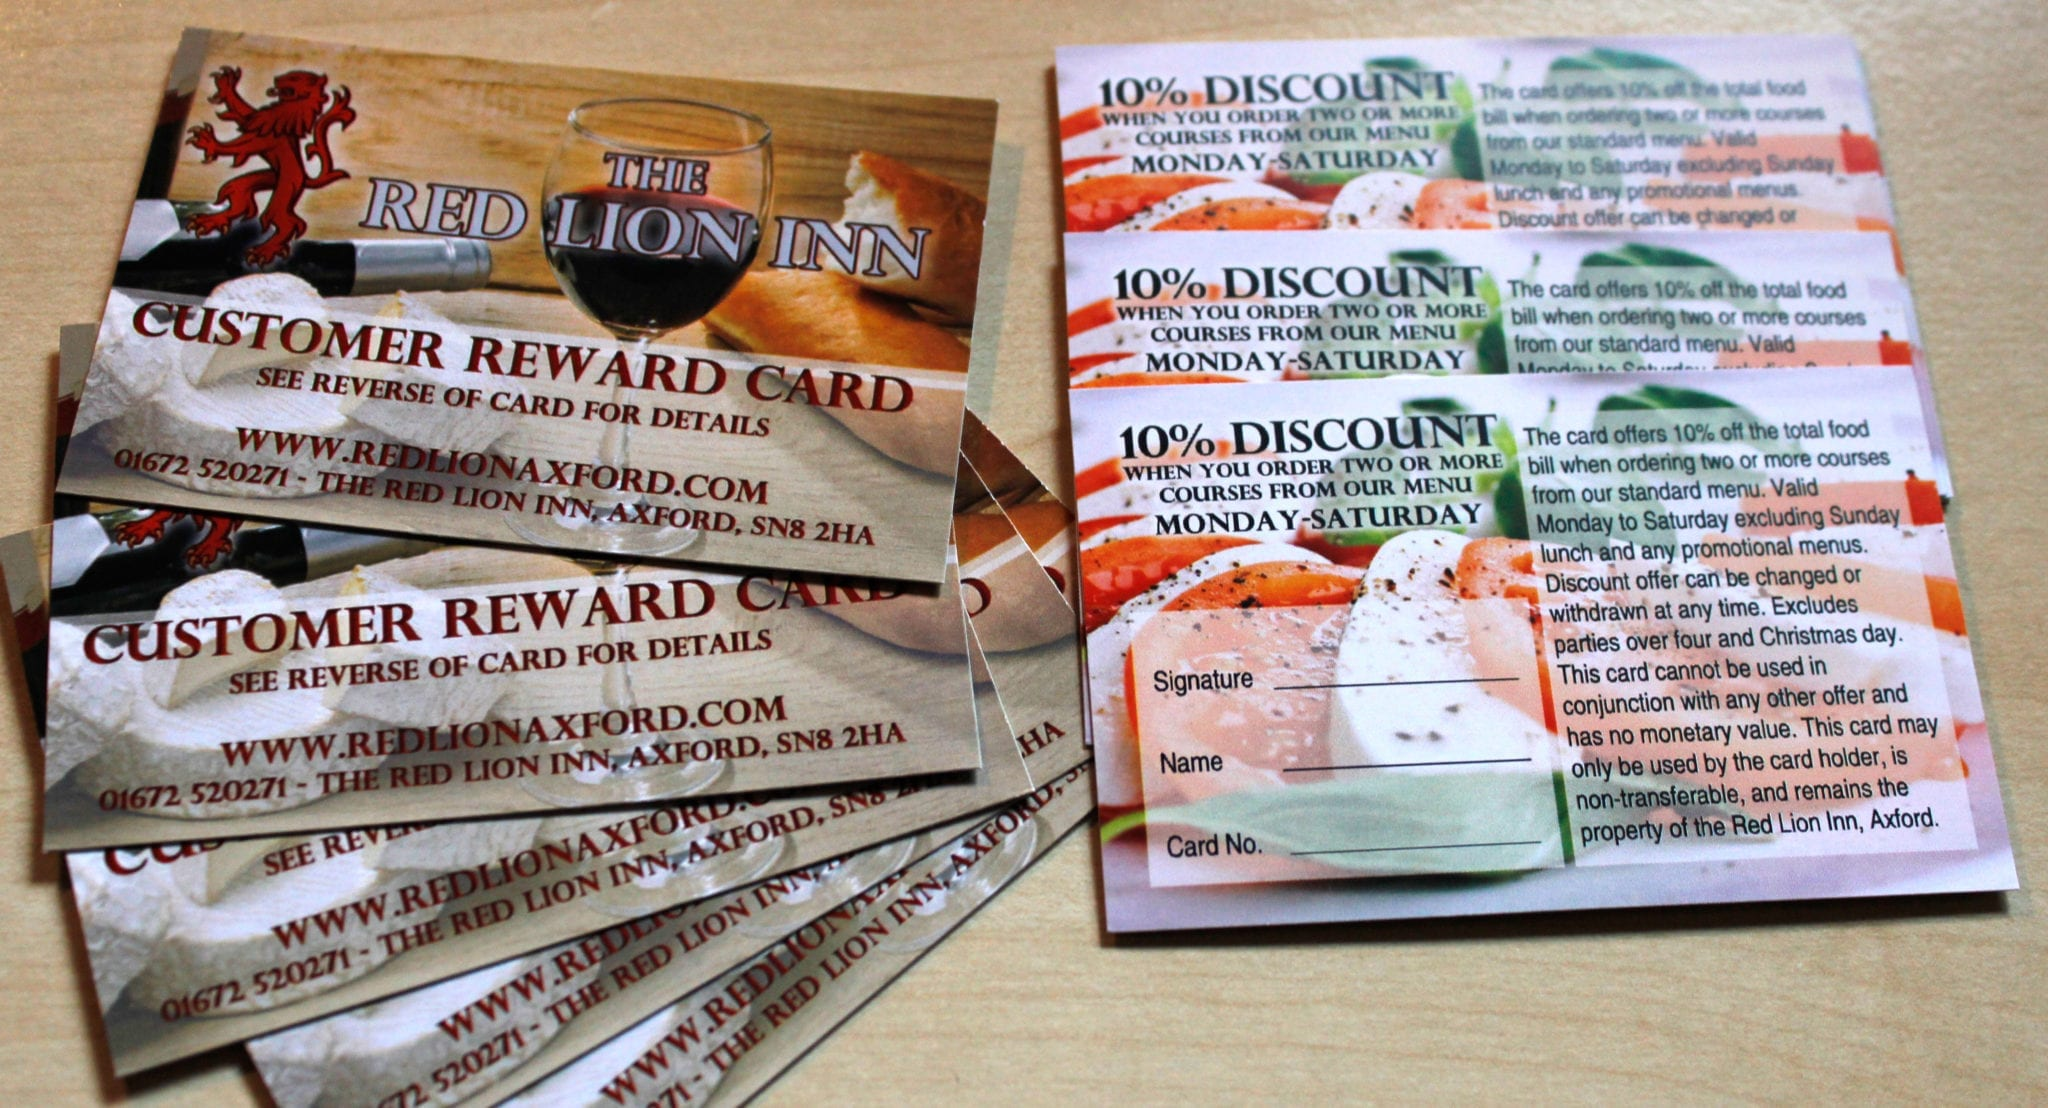 customer-reward-cards-for-the-red-lion-inn-axford.jpg